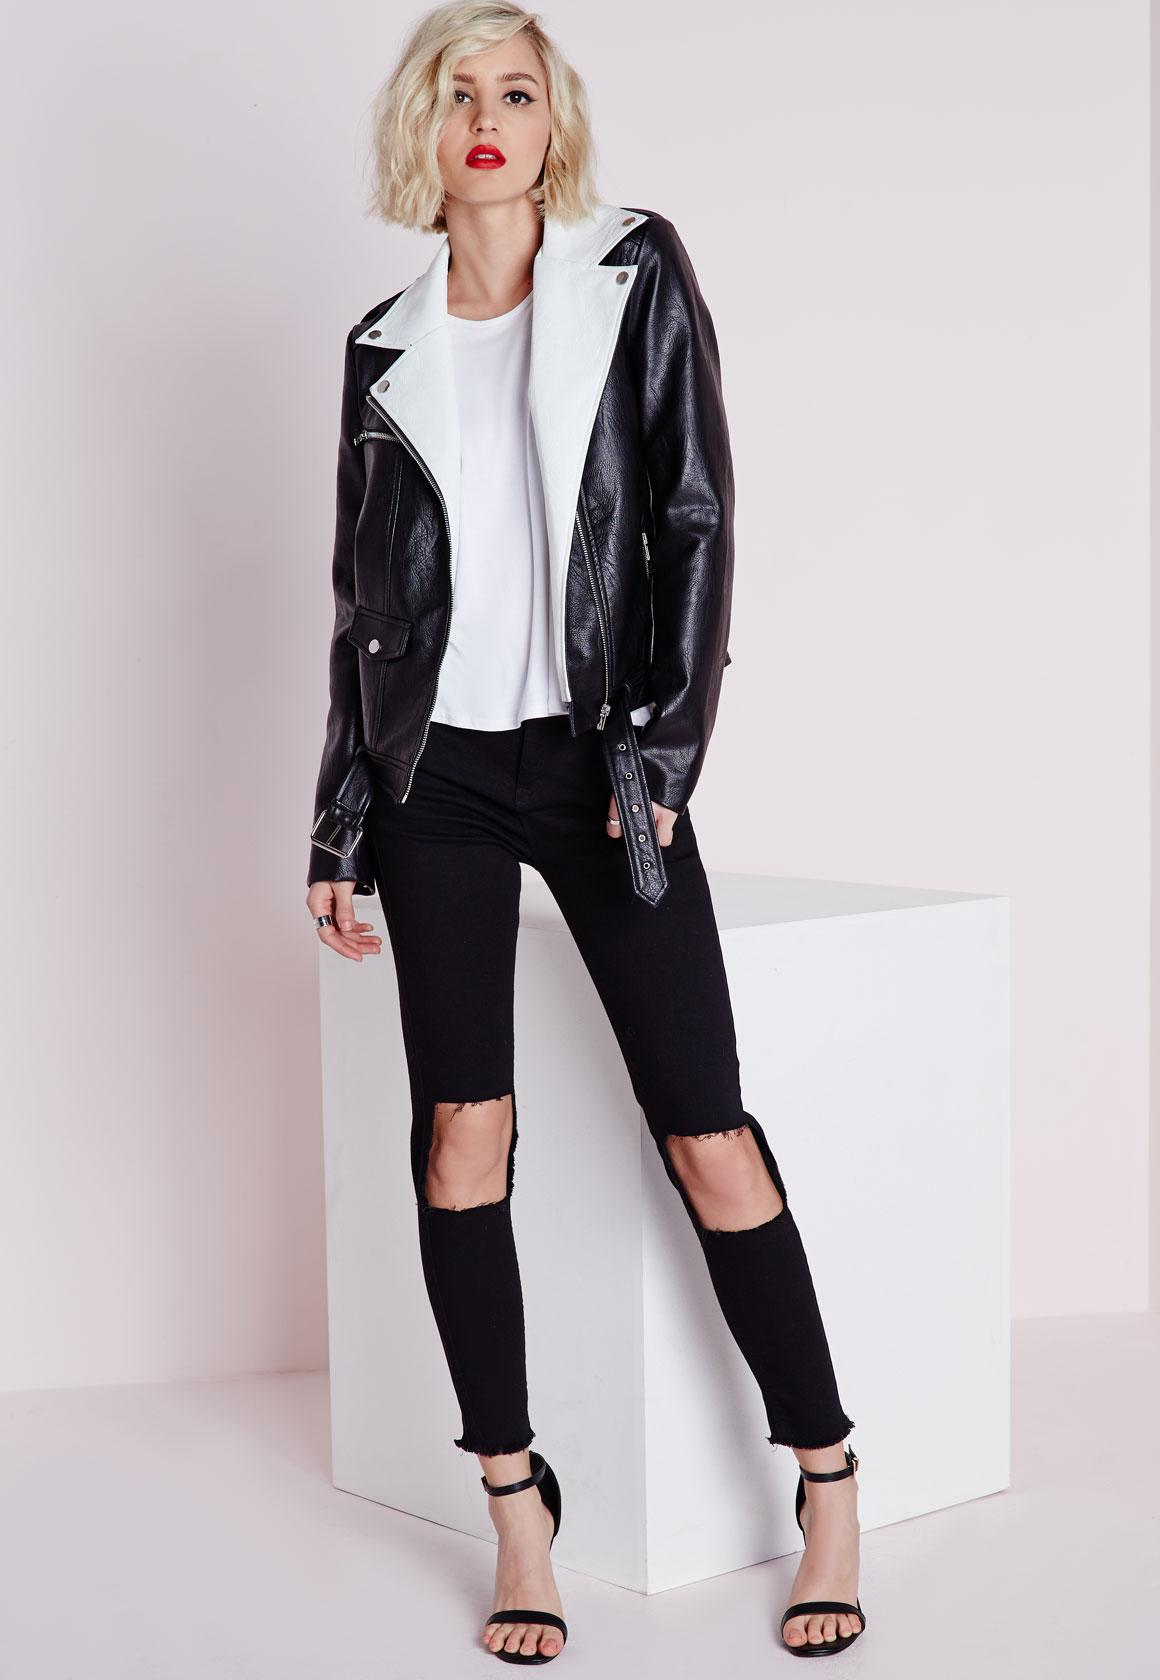 Extreme Cut Out Knee Skinny Jeans Black | Missguided